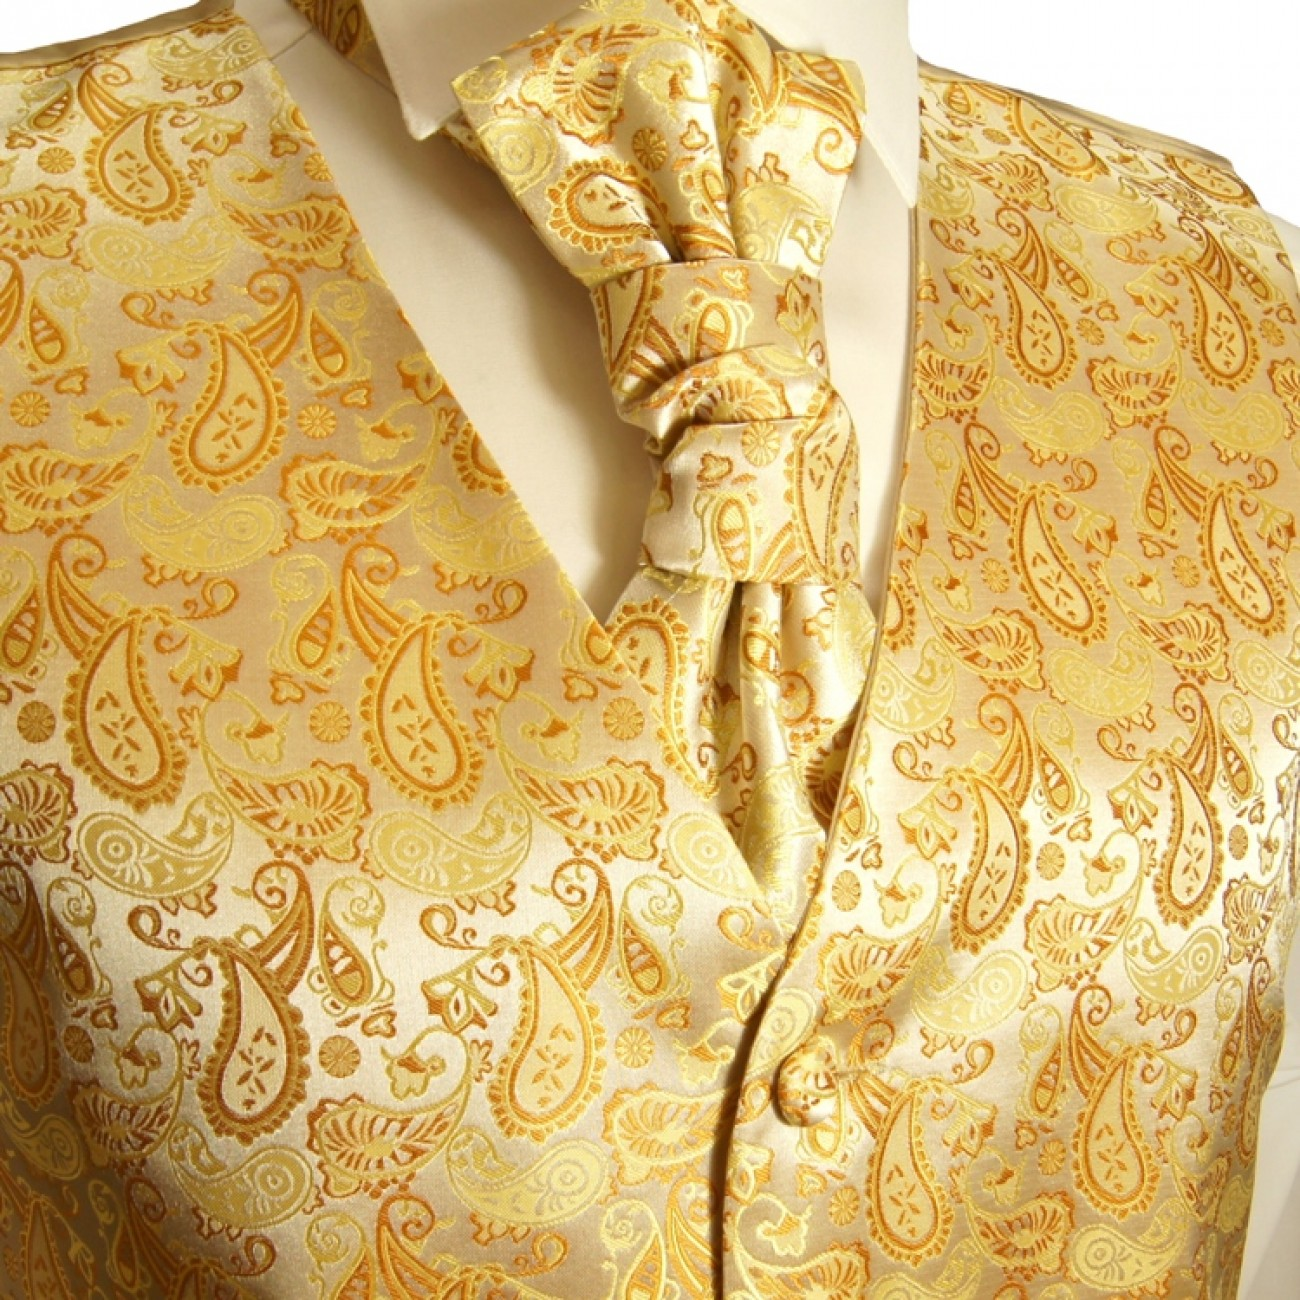 Gold waistcoat for wedding with necktie ascot tie pocket square and cufflinks v16